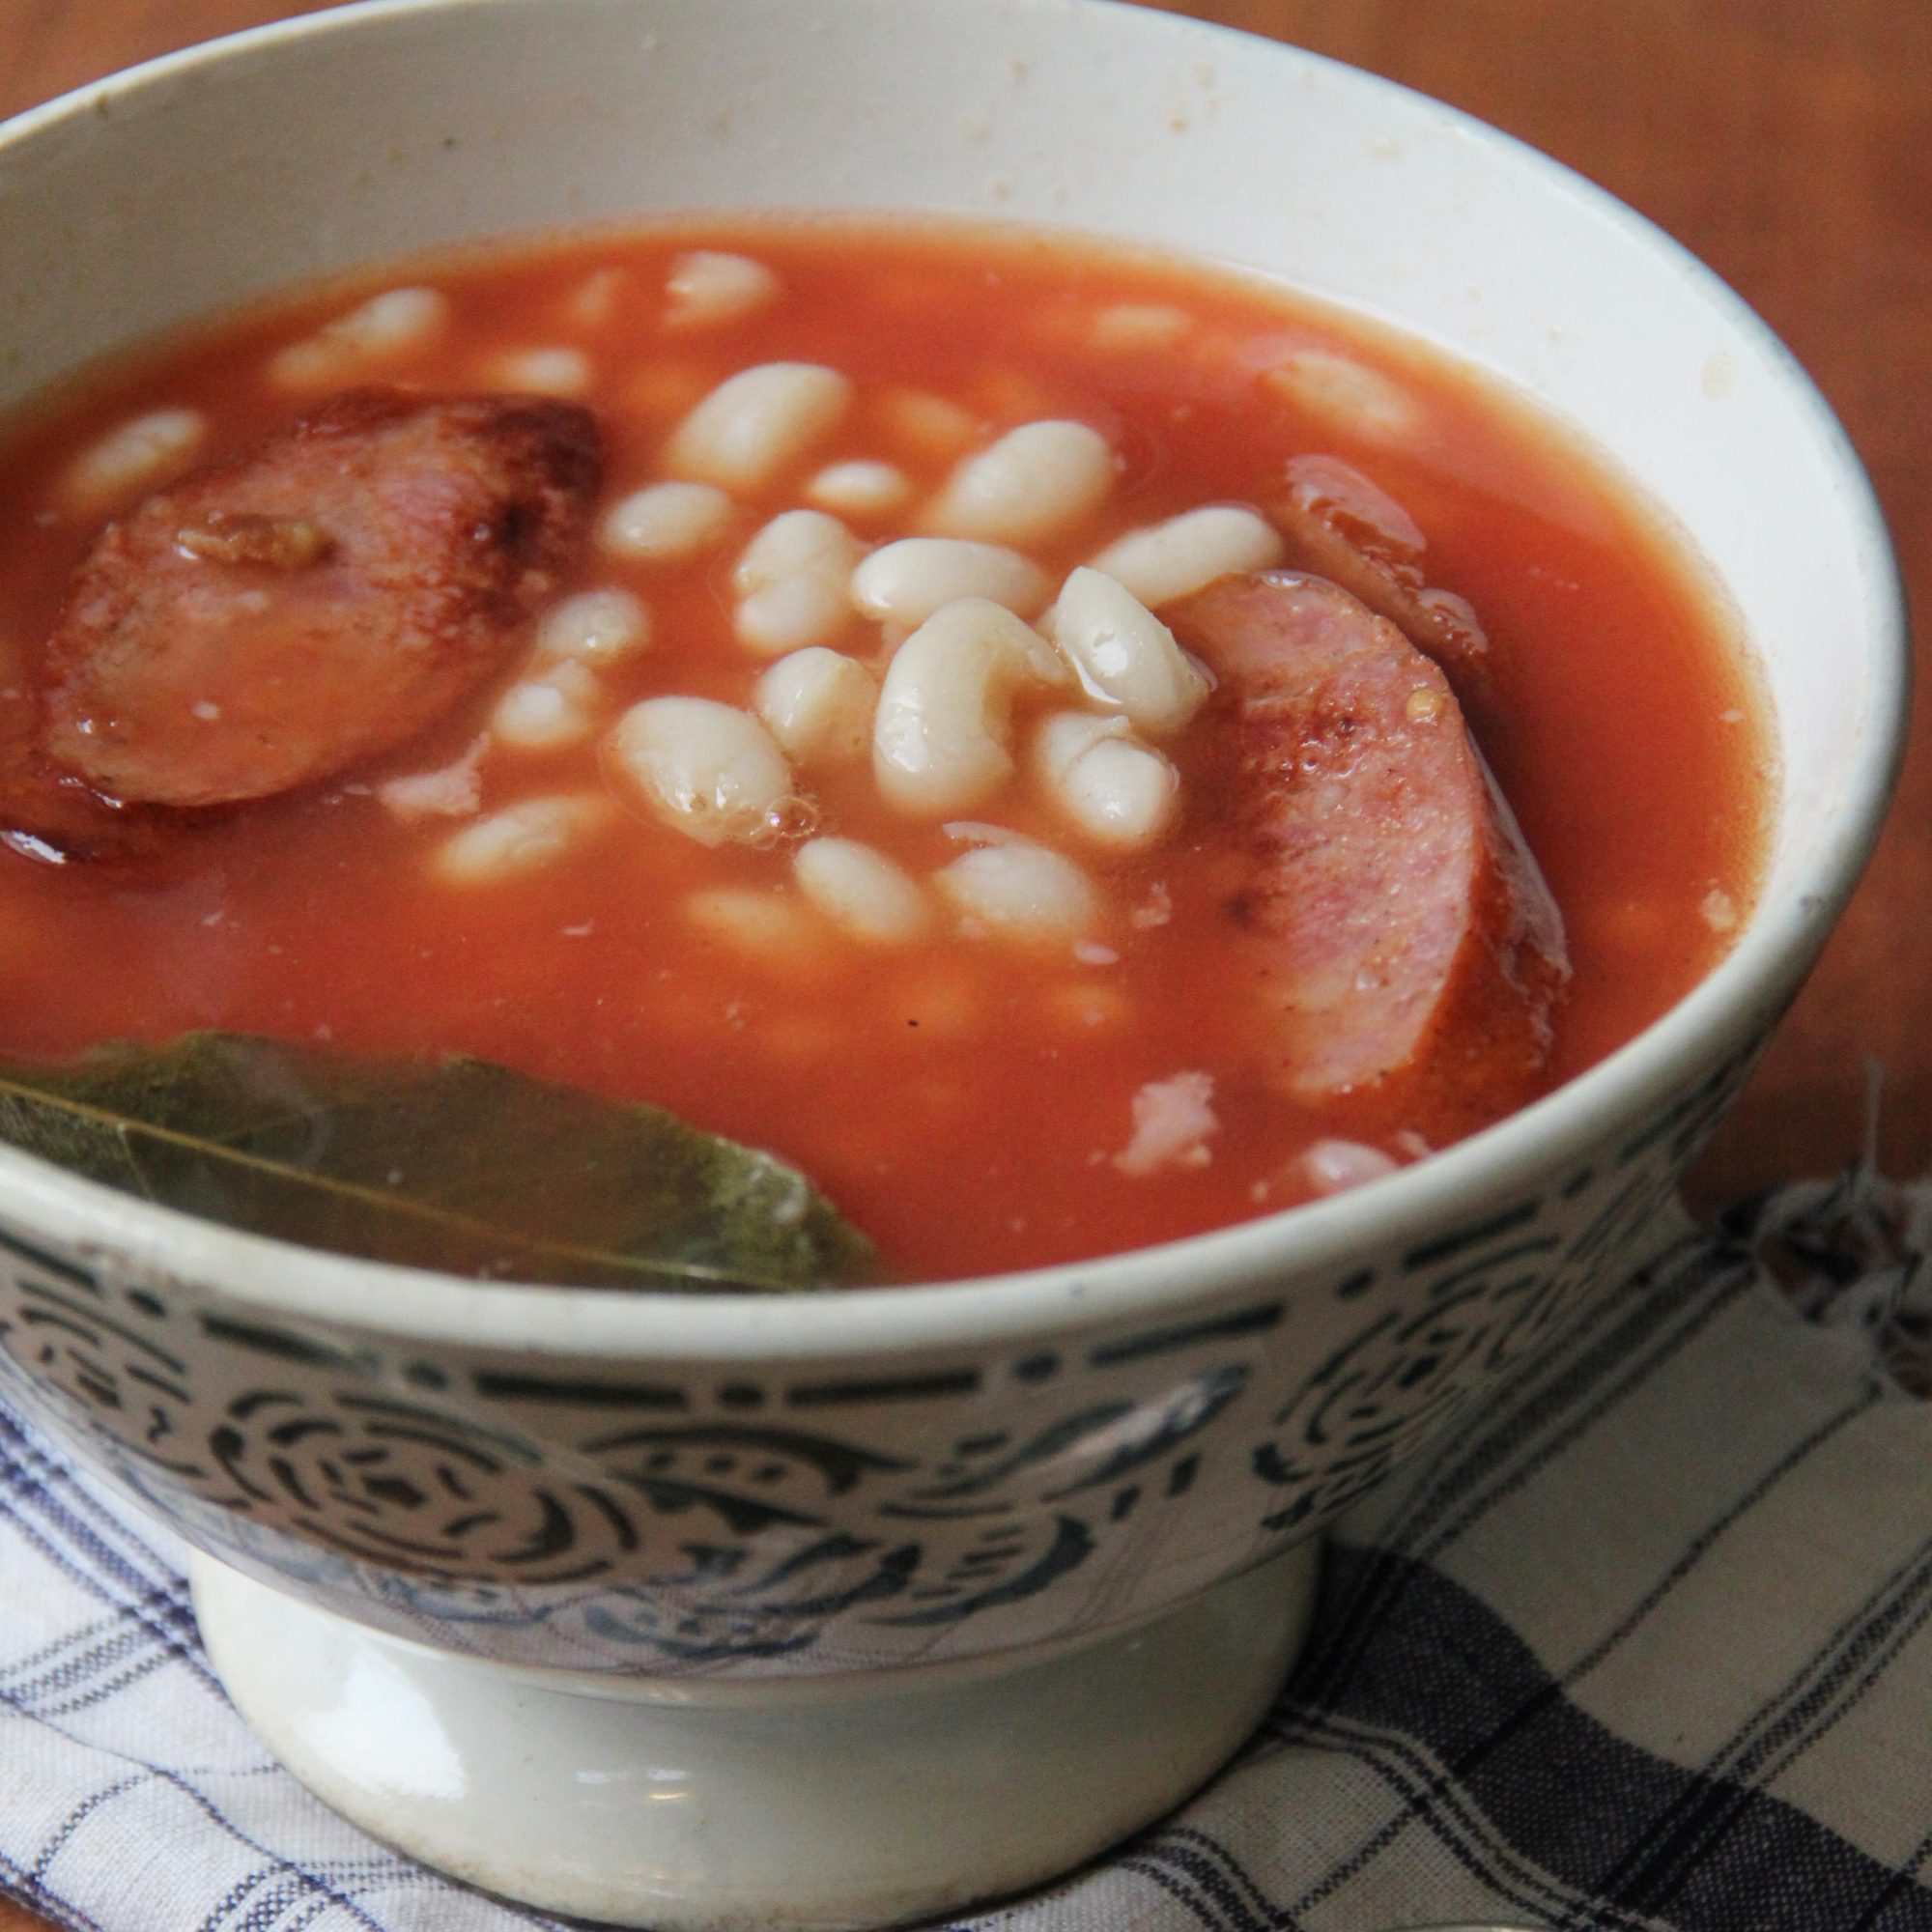 201405-r-portuguese-bean-and-sausage-soup.jpg